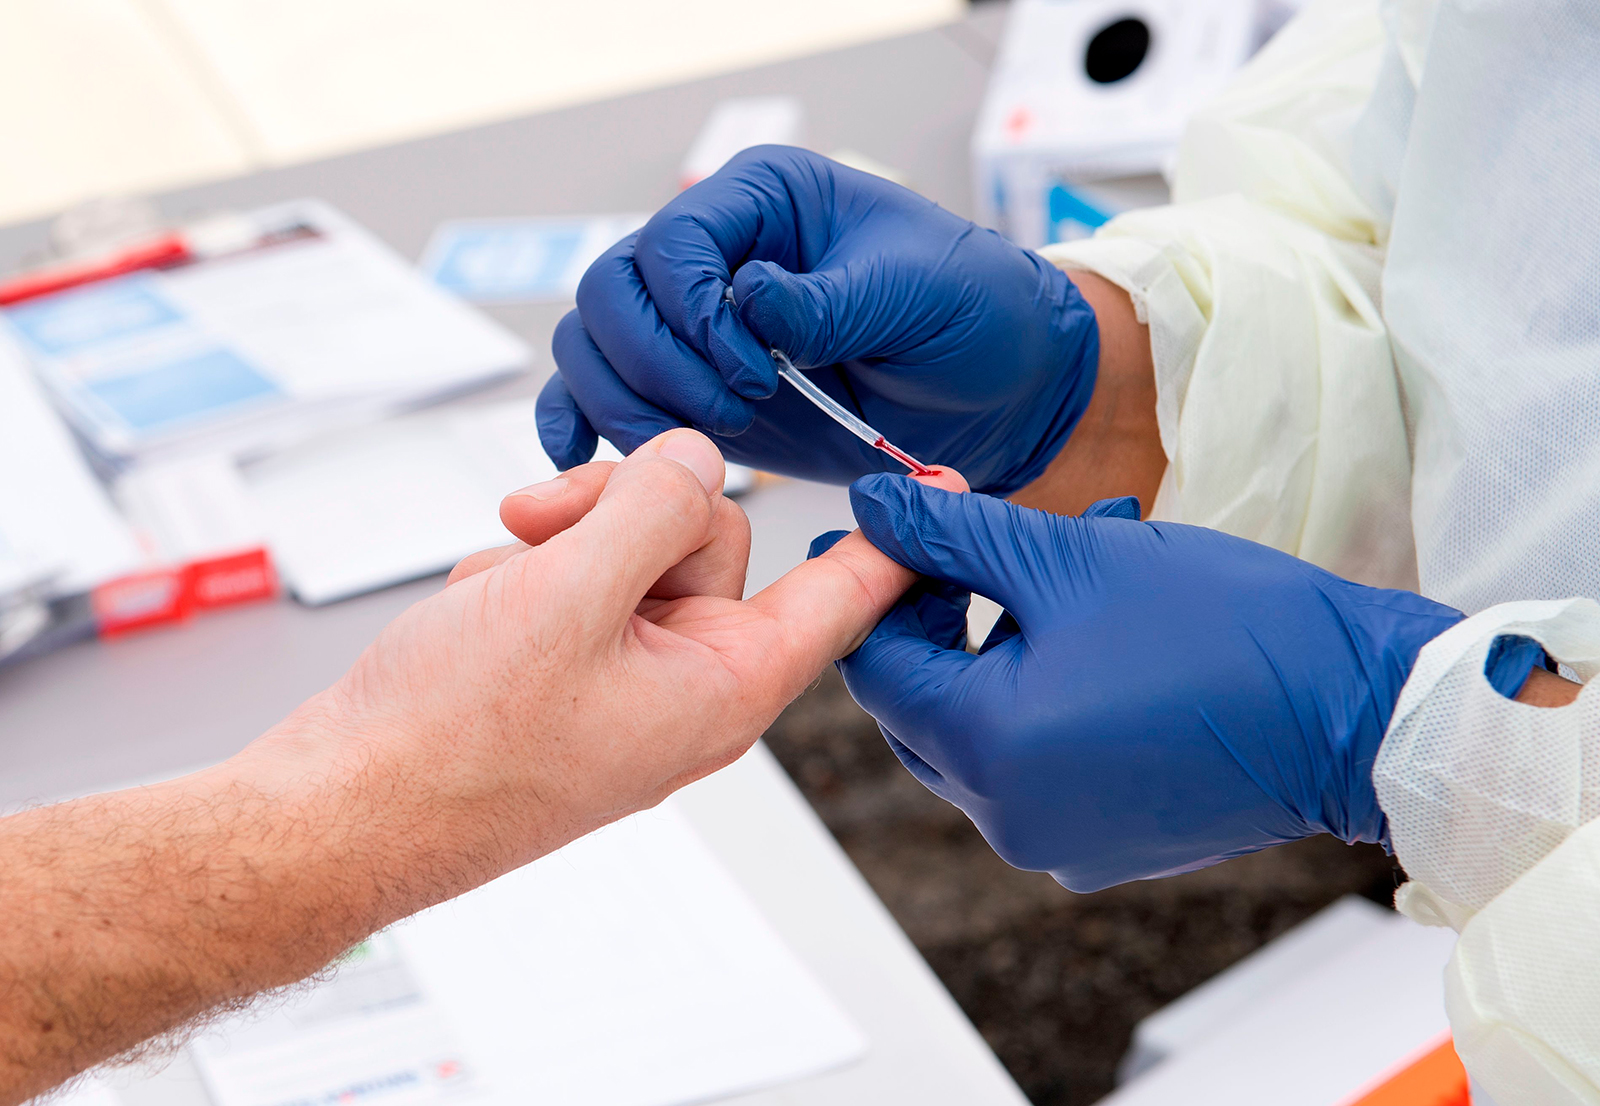 A health worker takes a drop of blood for a Covid-19 antibody test at the Diagnostic and Wellness Center on May 5, in Torrance, California.